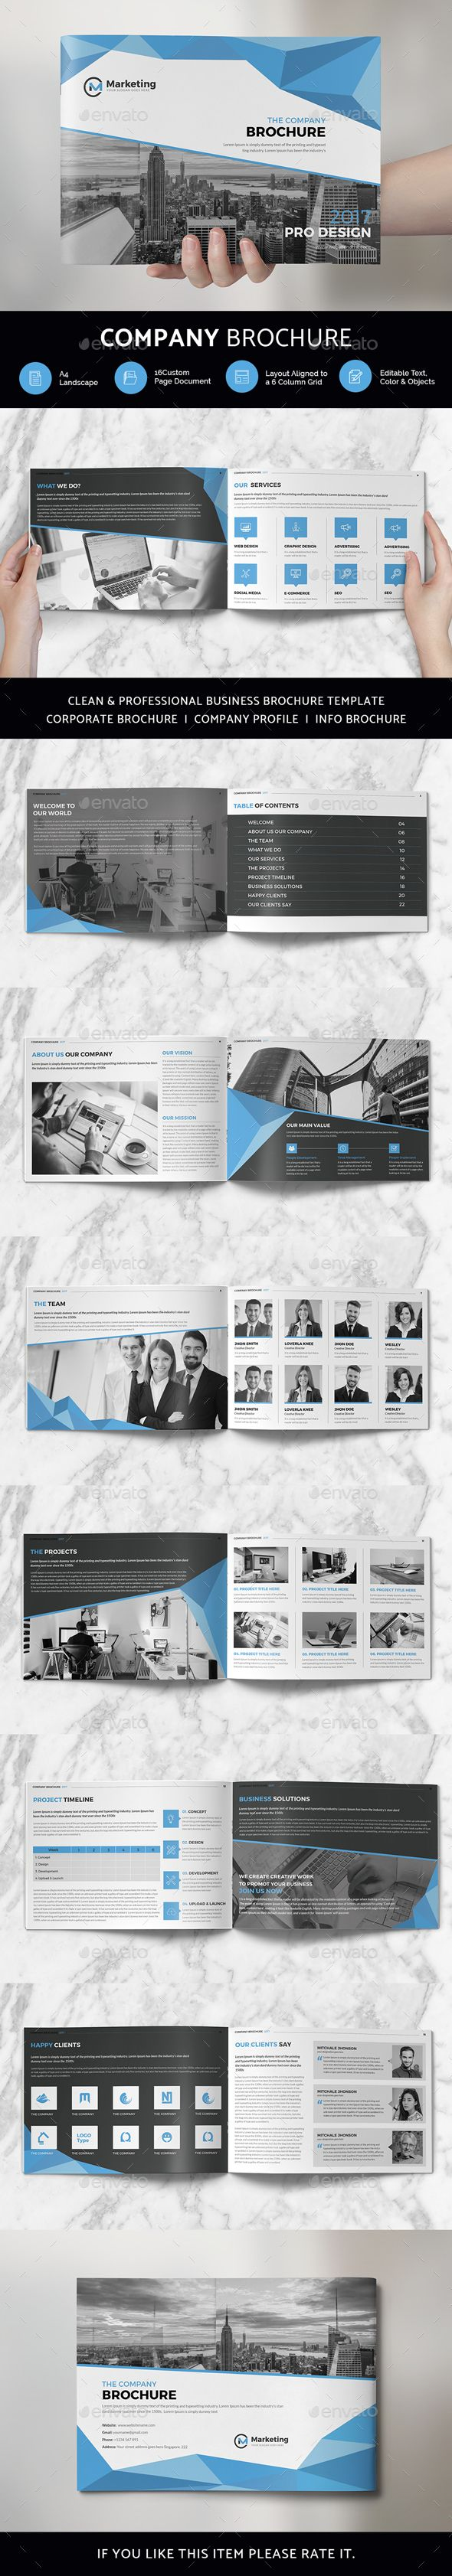 #Company #Brochure - Print Templates Download here: https://graphicriver.net/item/company-brochure/19728942?ref=alena994